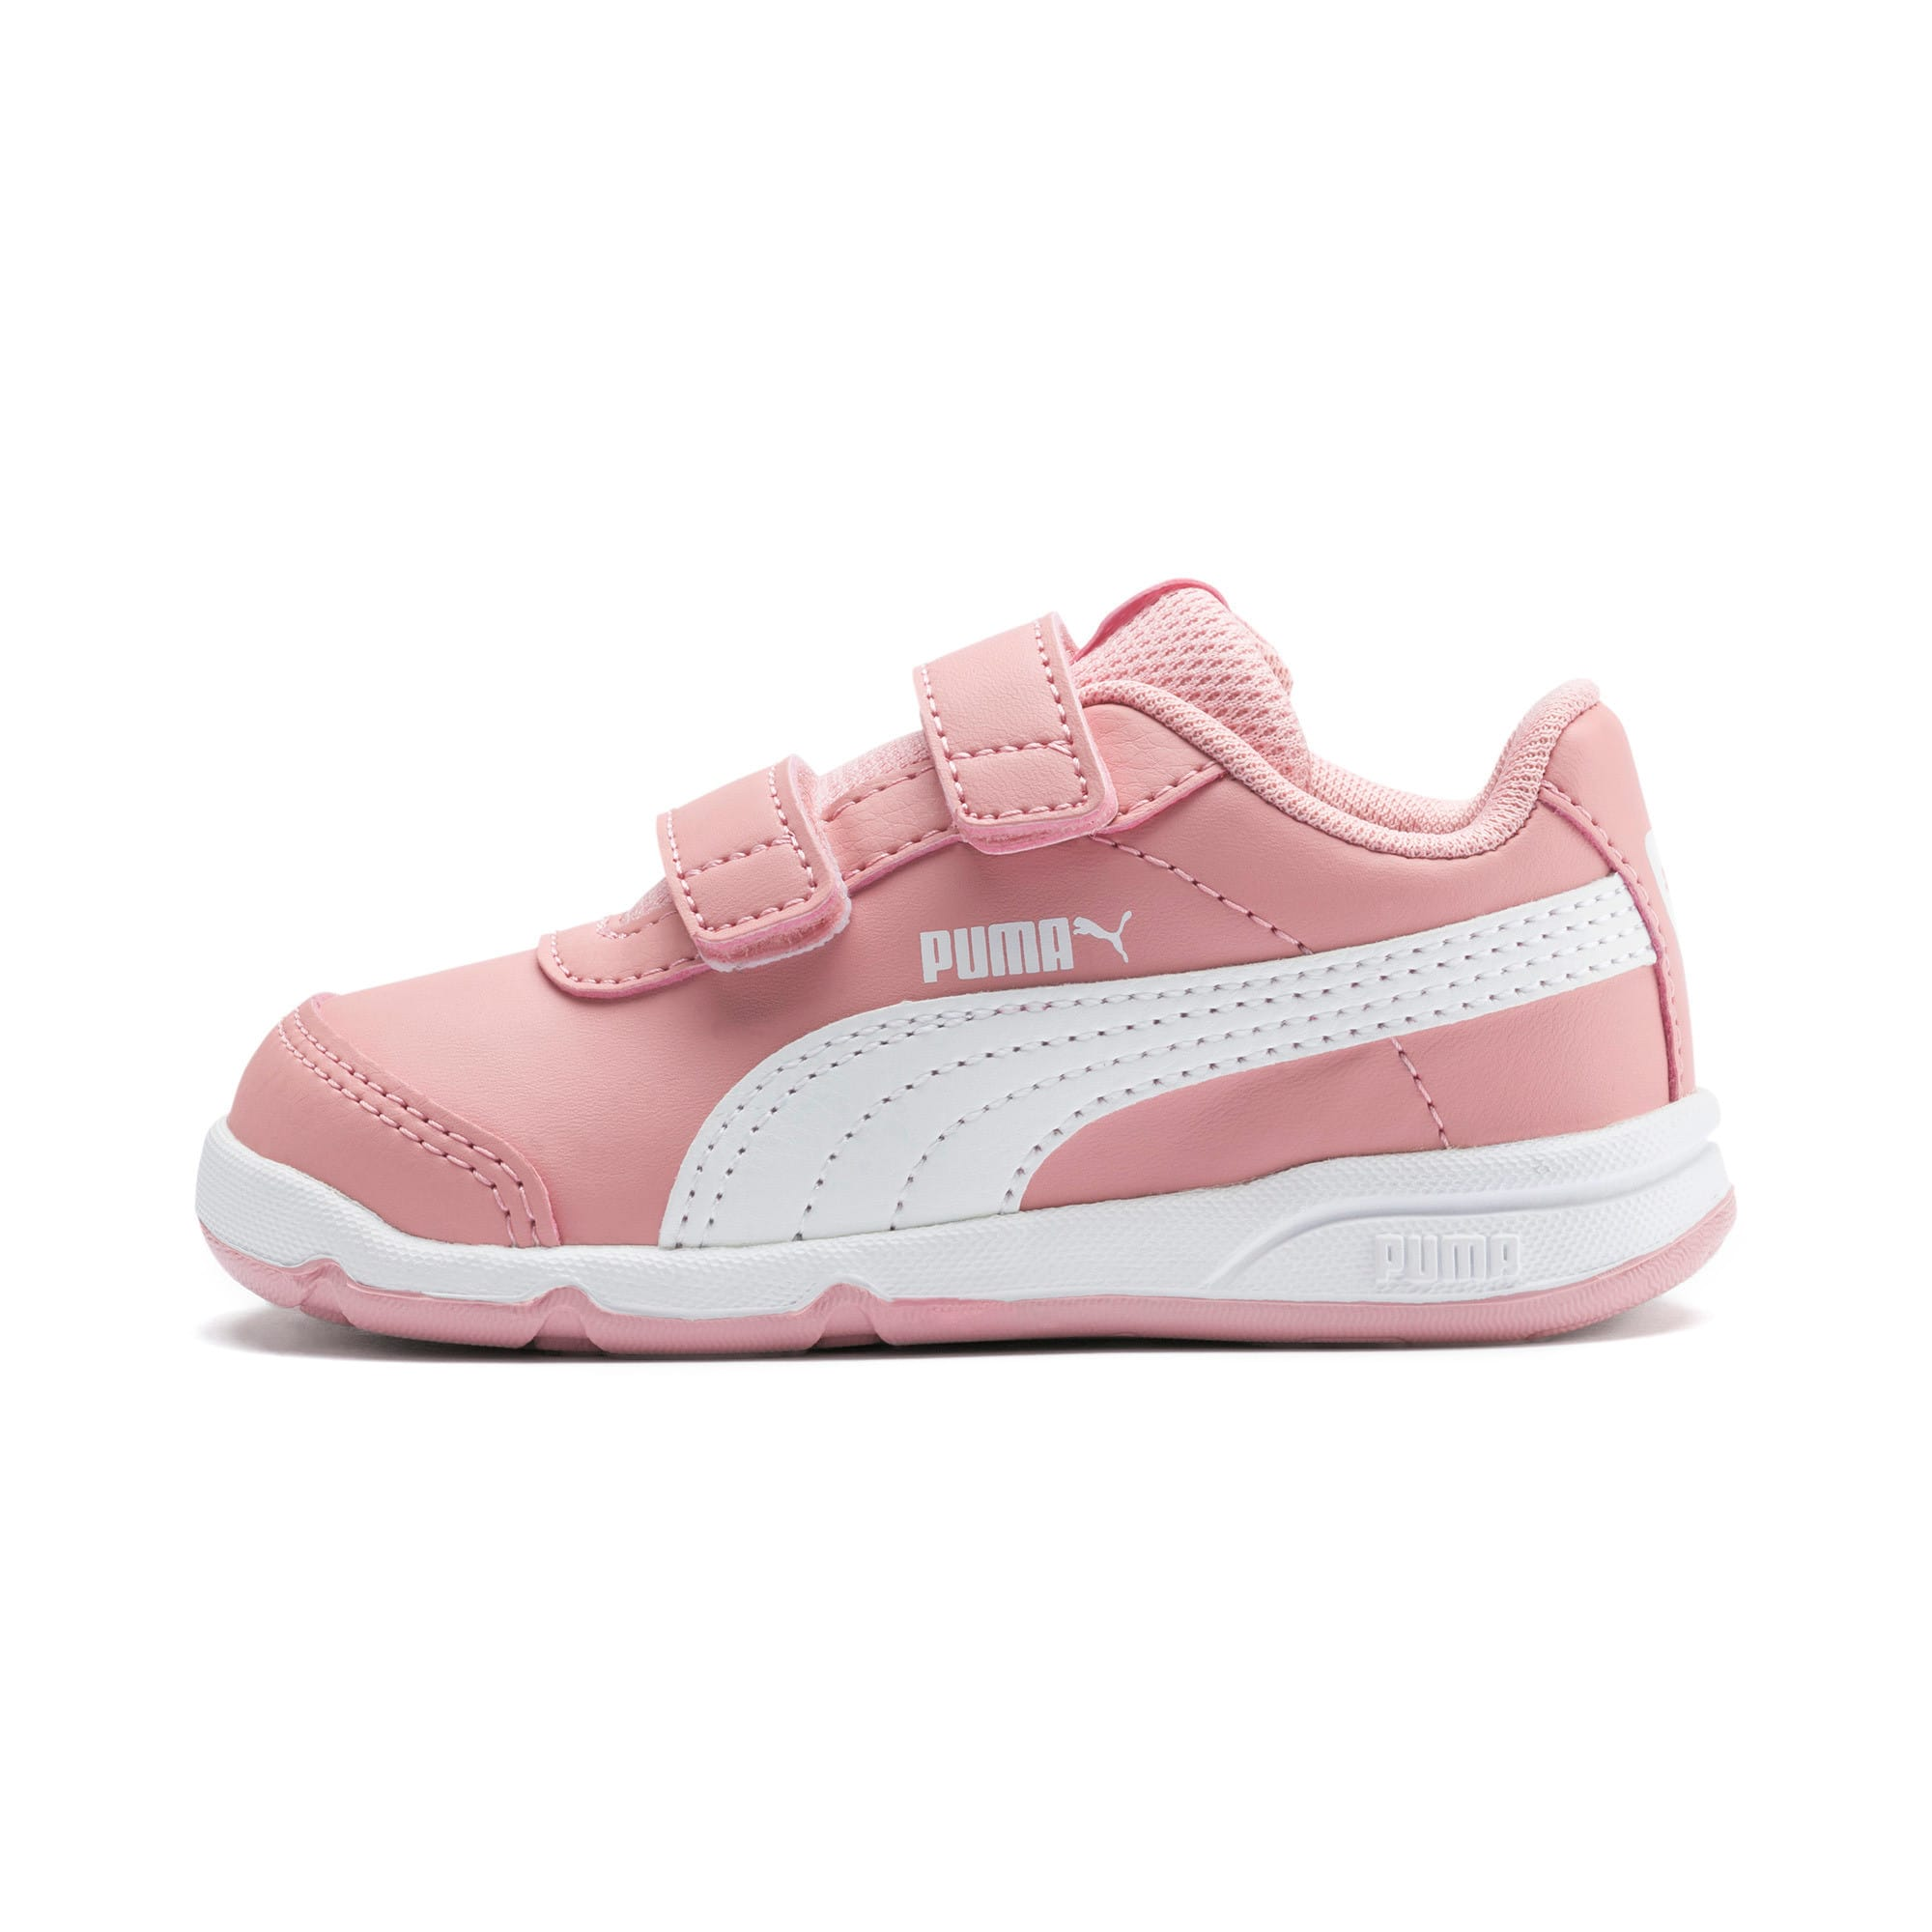 Thumbnail 1 of Basket Stepfleex 2 SL VE V pour bébé, Bridal Rose-Puma White, medium